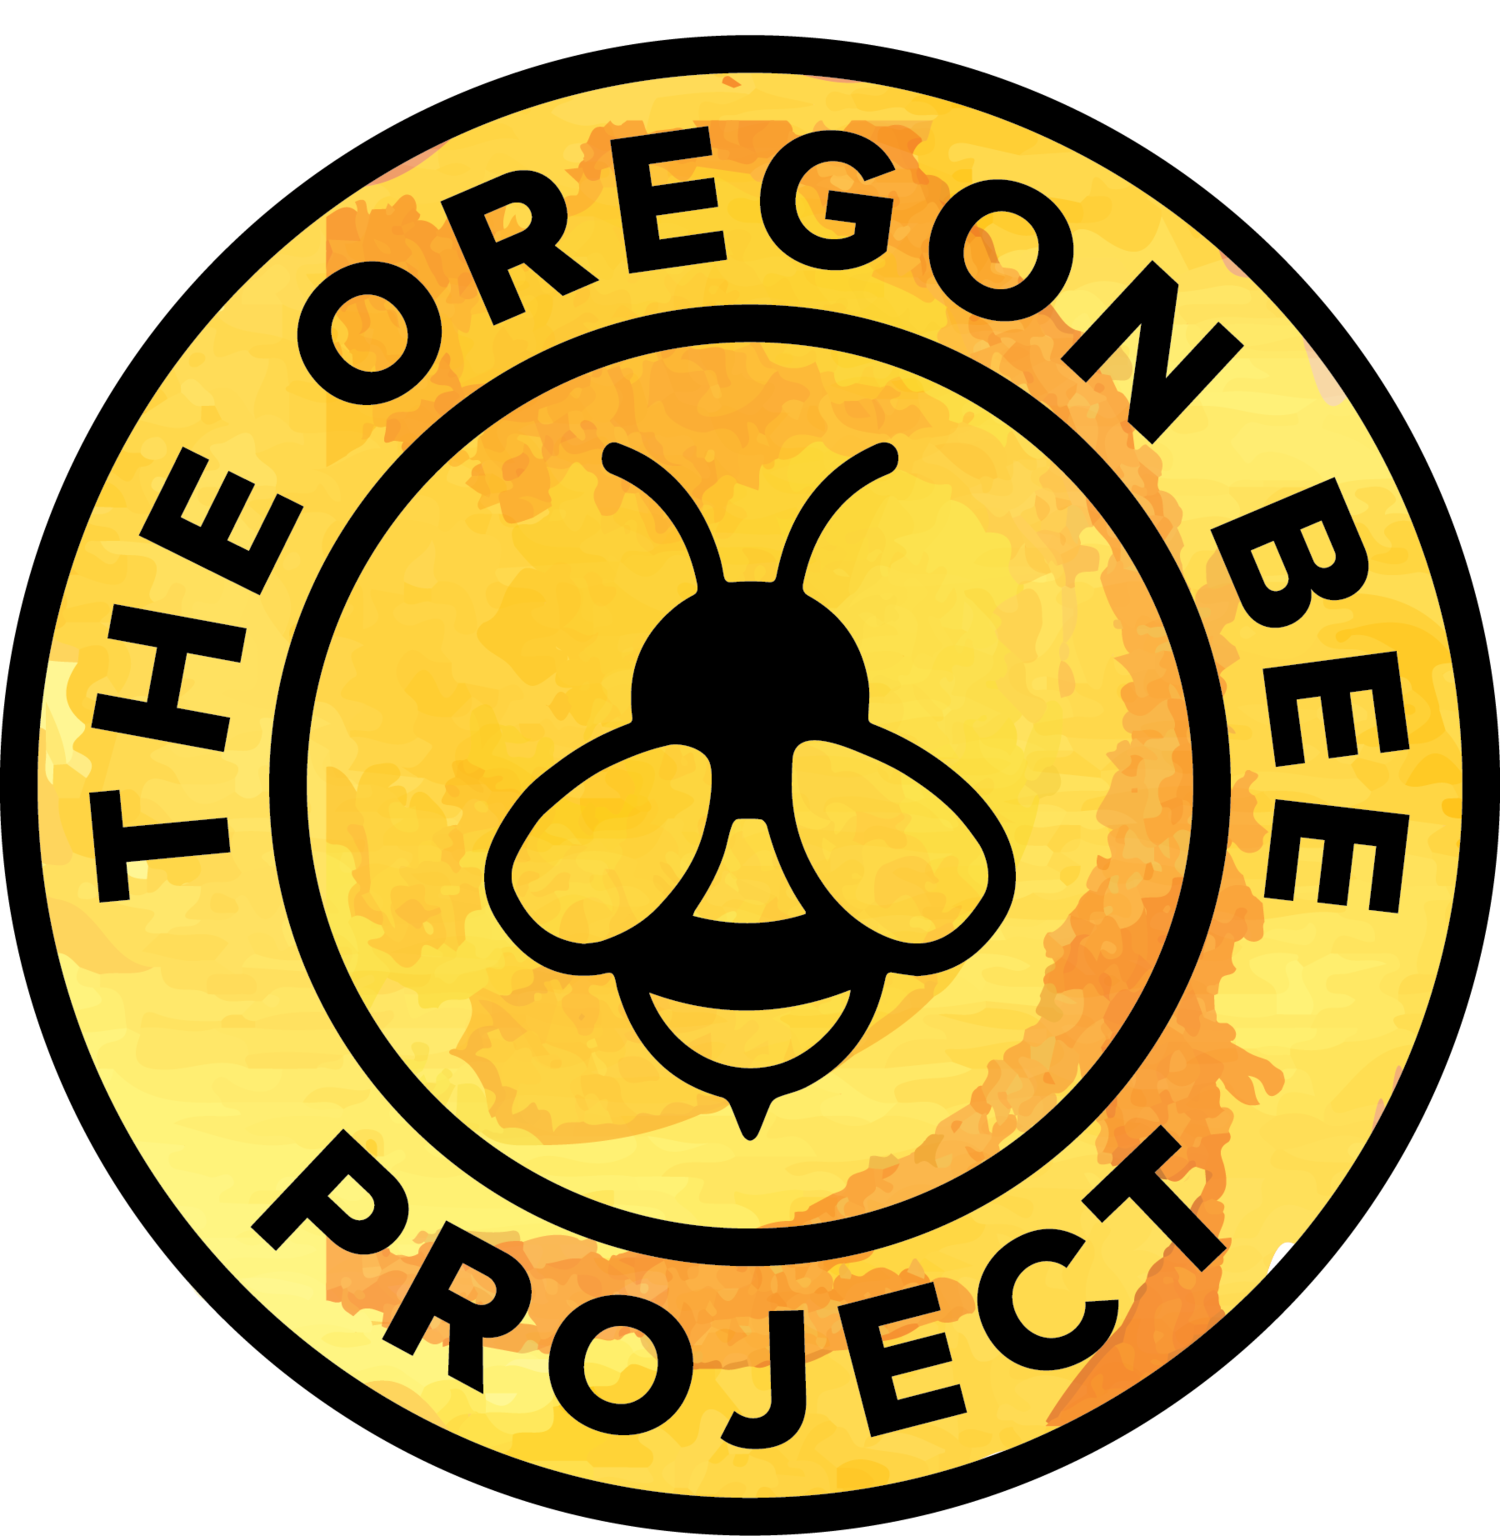 Habitat drawing bee. Frequently asked questions oregon